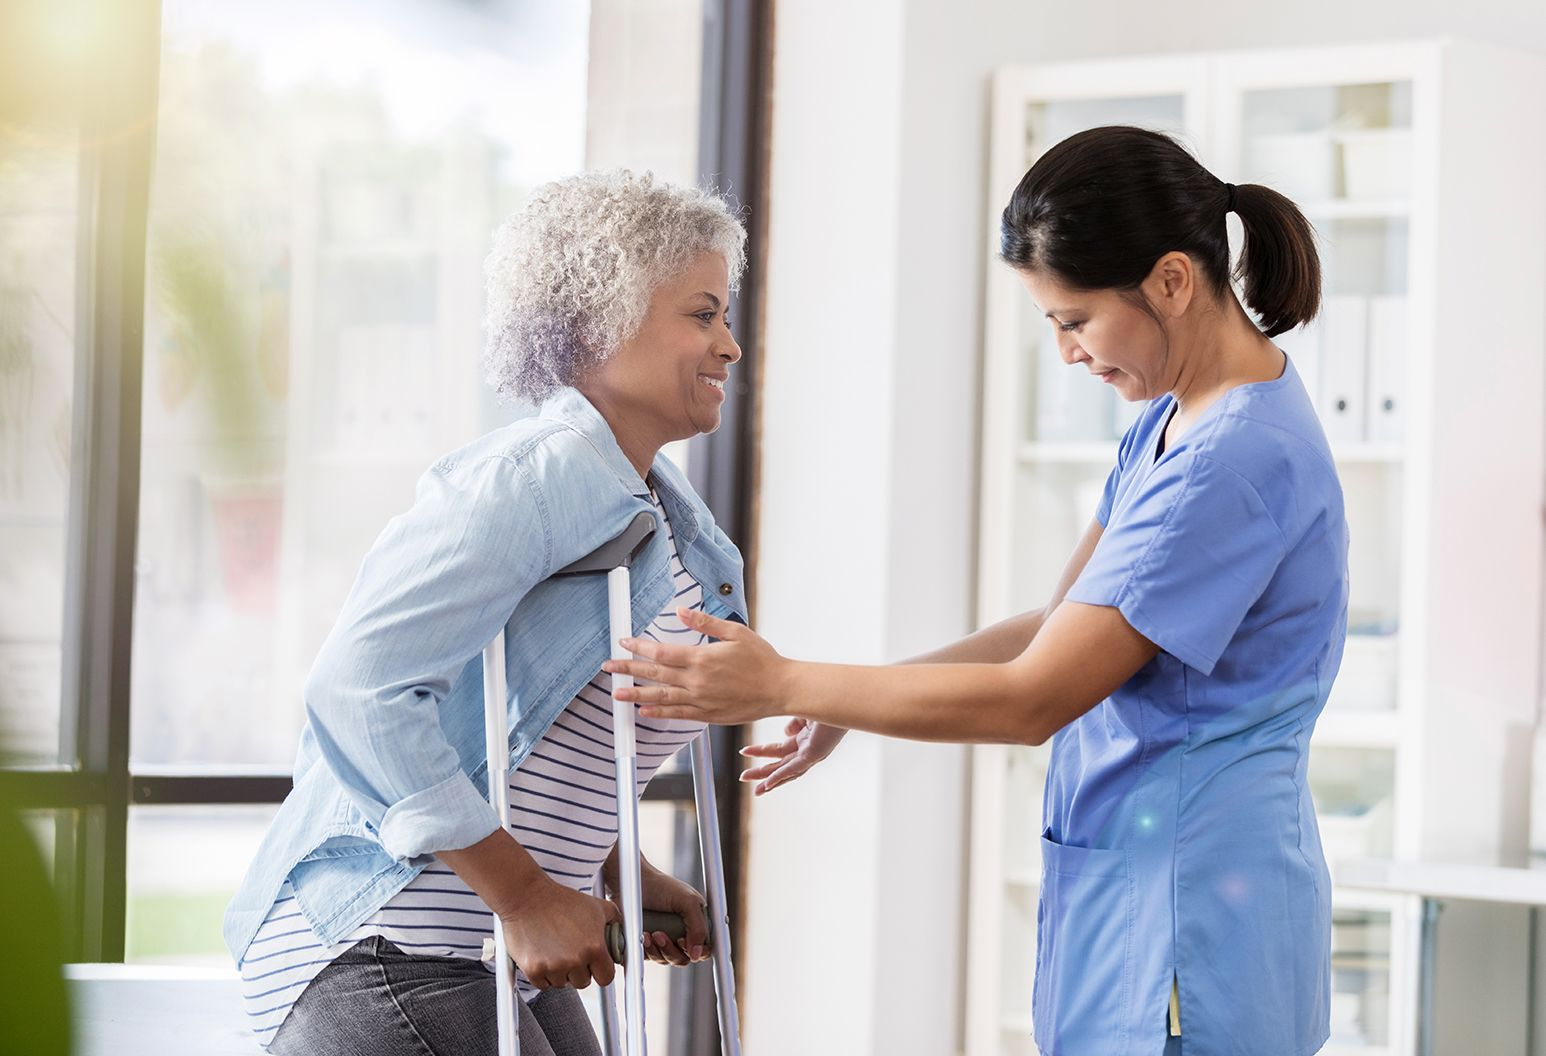 Senior woman on crutches works with a caring female physical therapist during her recovery process.